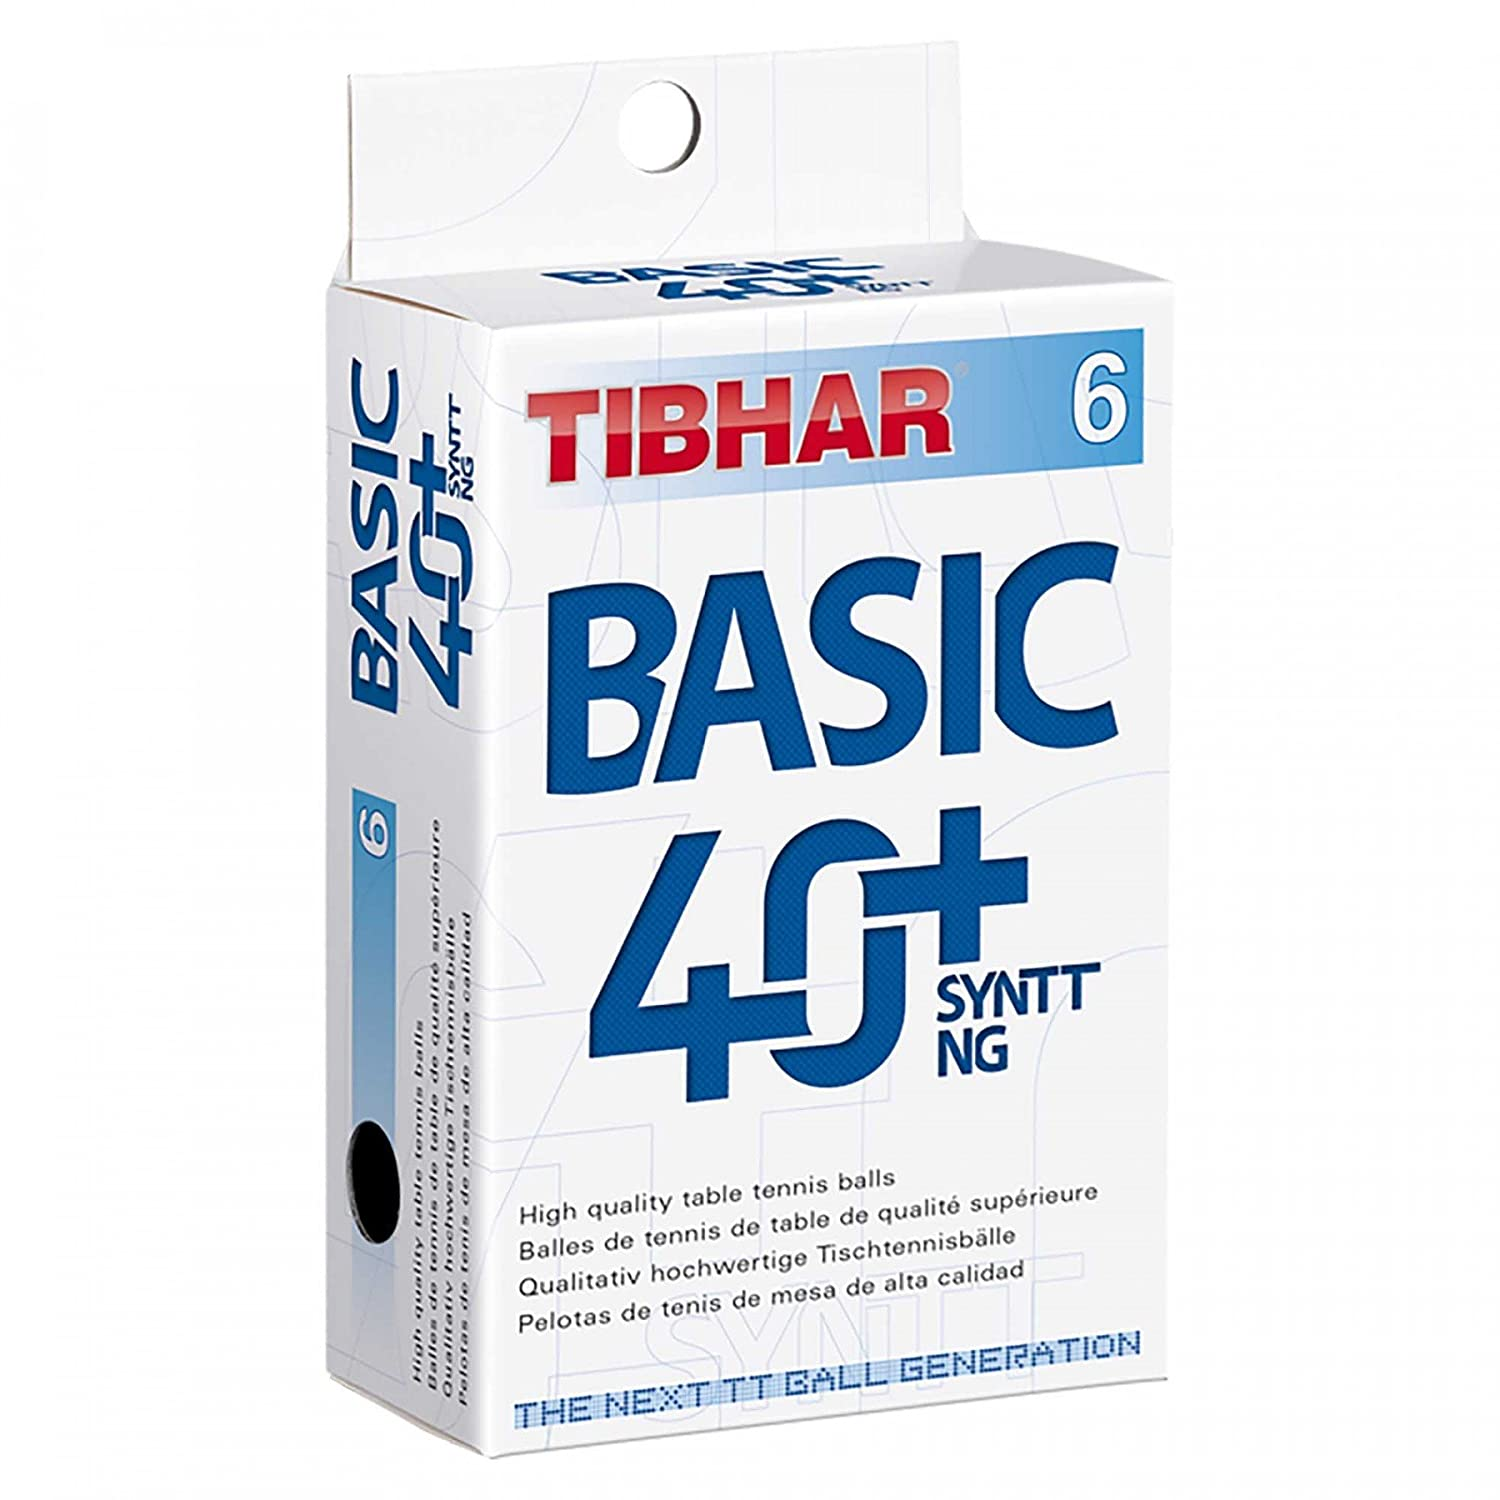 Tibhar Ball Basic 40+ SYNTT NG 6er St orange 85514200